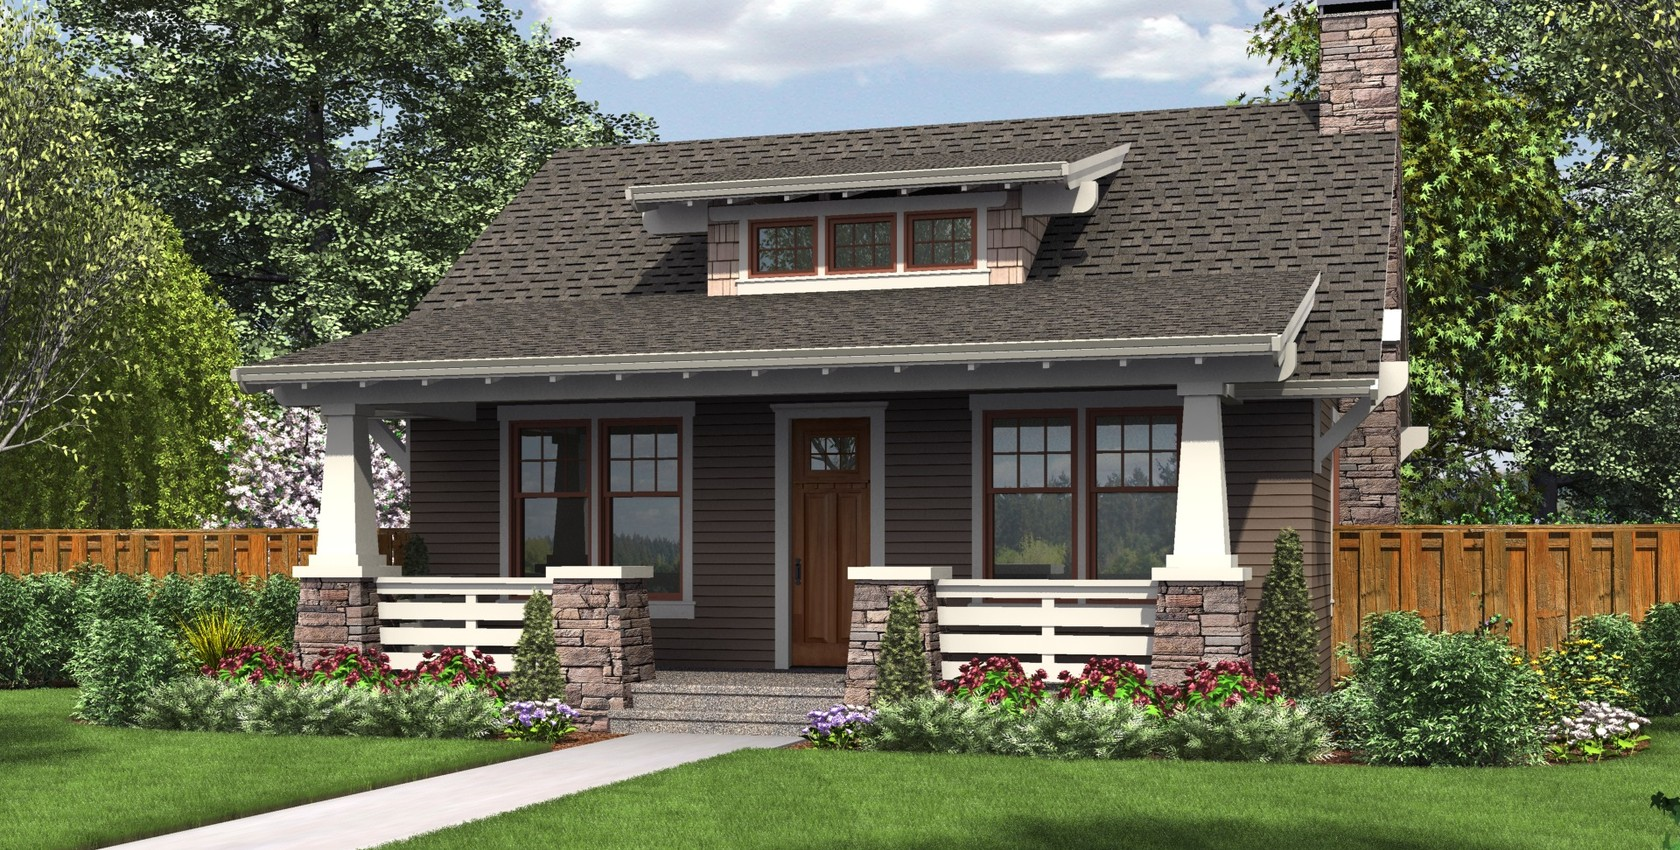 Image for Aumsville-A Beautifully Detailed Craftsman Getaway-7748